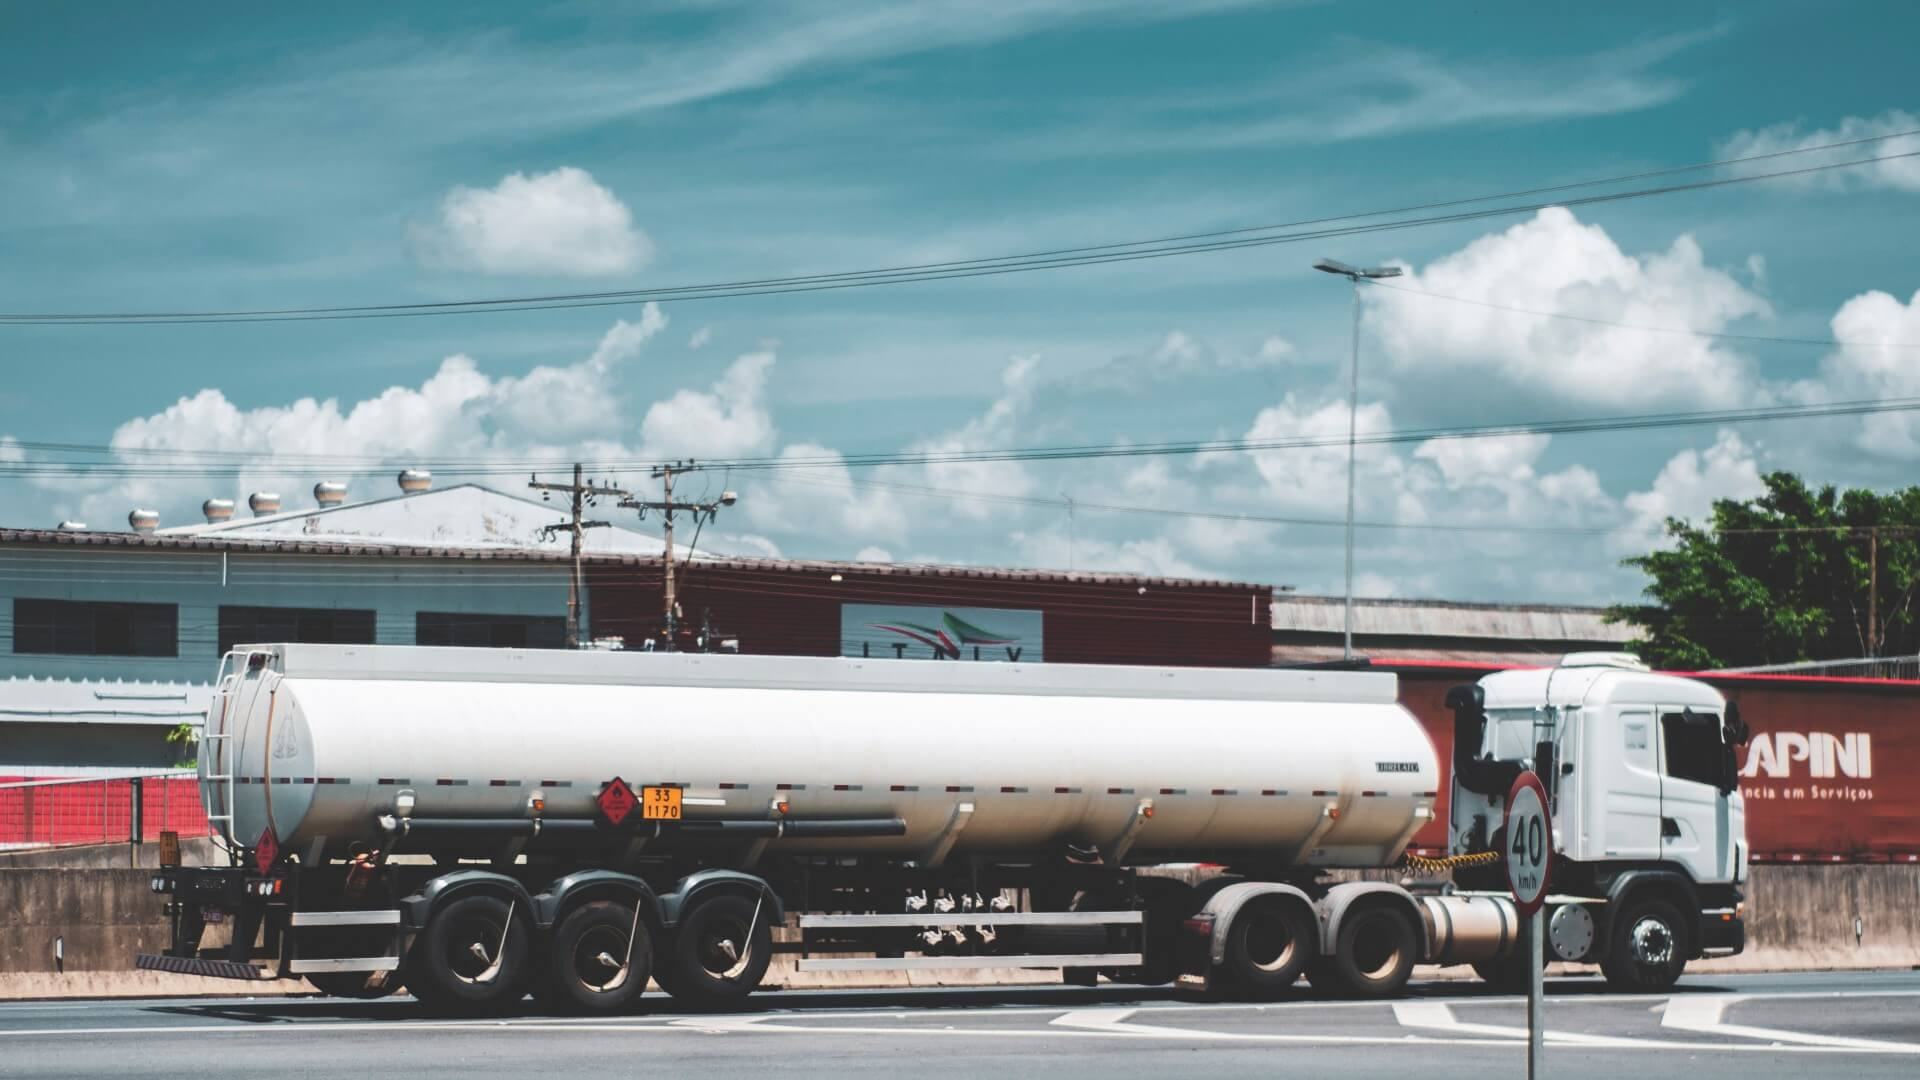 Tanker truck in front of businesses on a sunny day